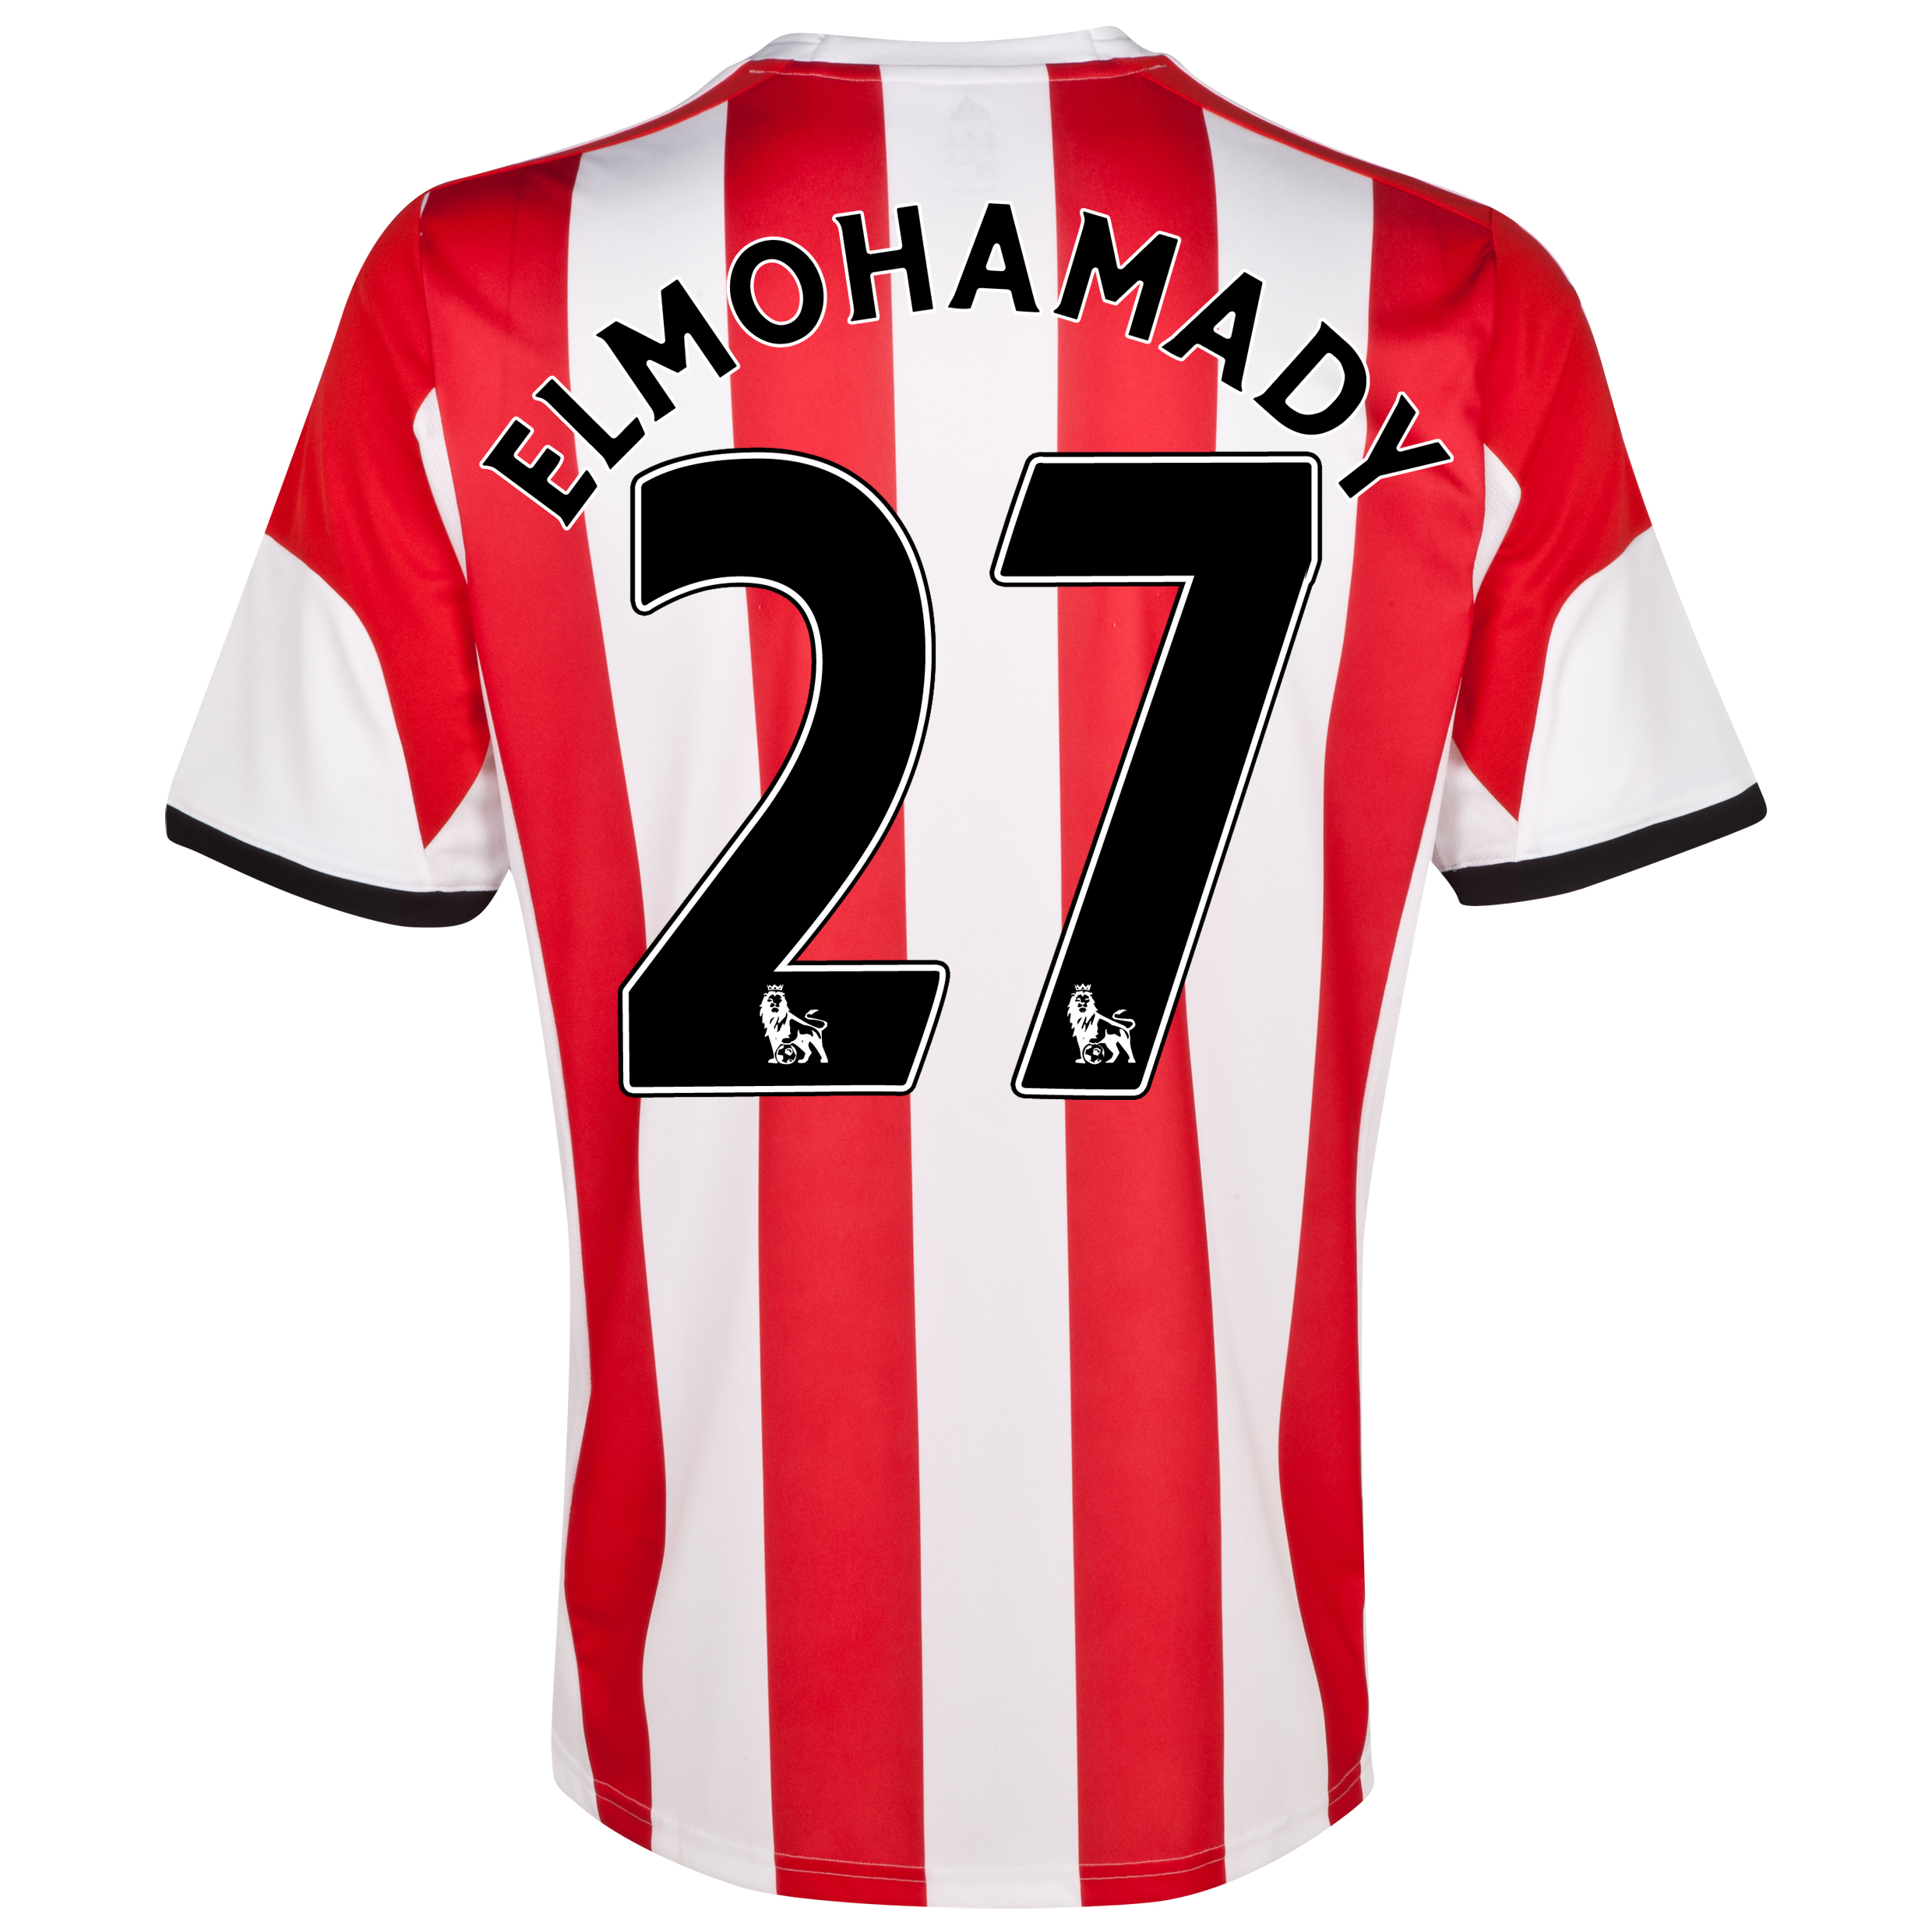 Sunderland Home Shirt 2013/14  with Elmohamady 27 printing